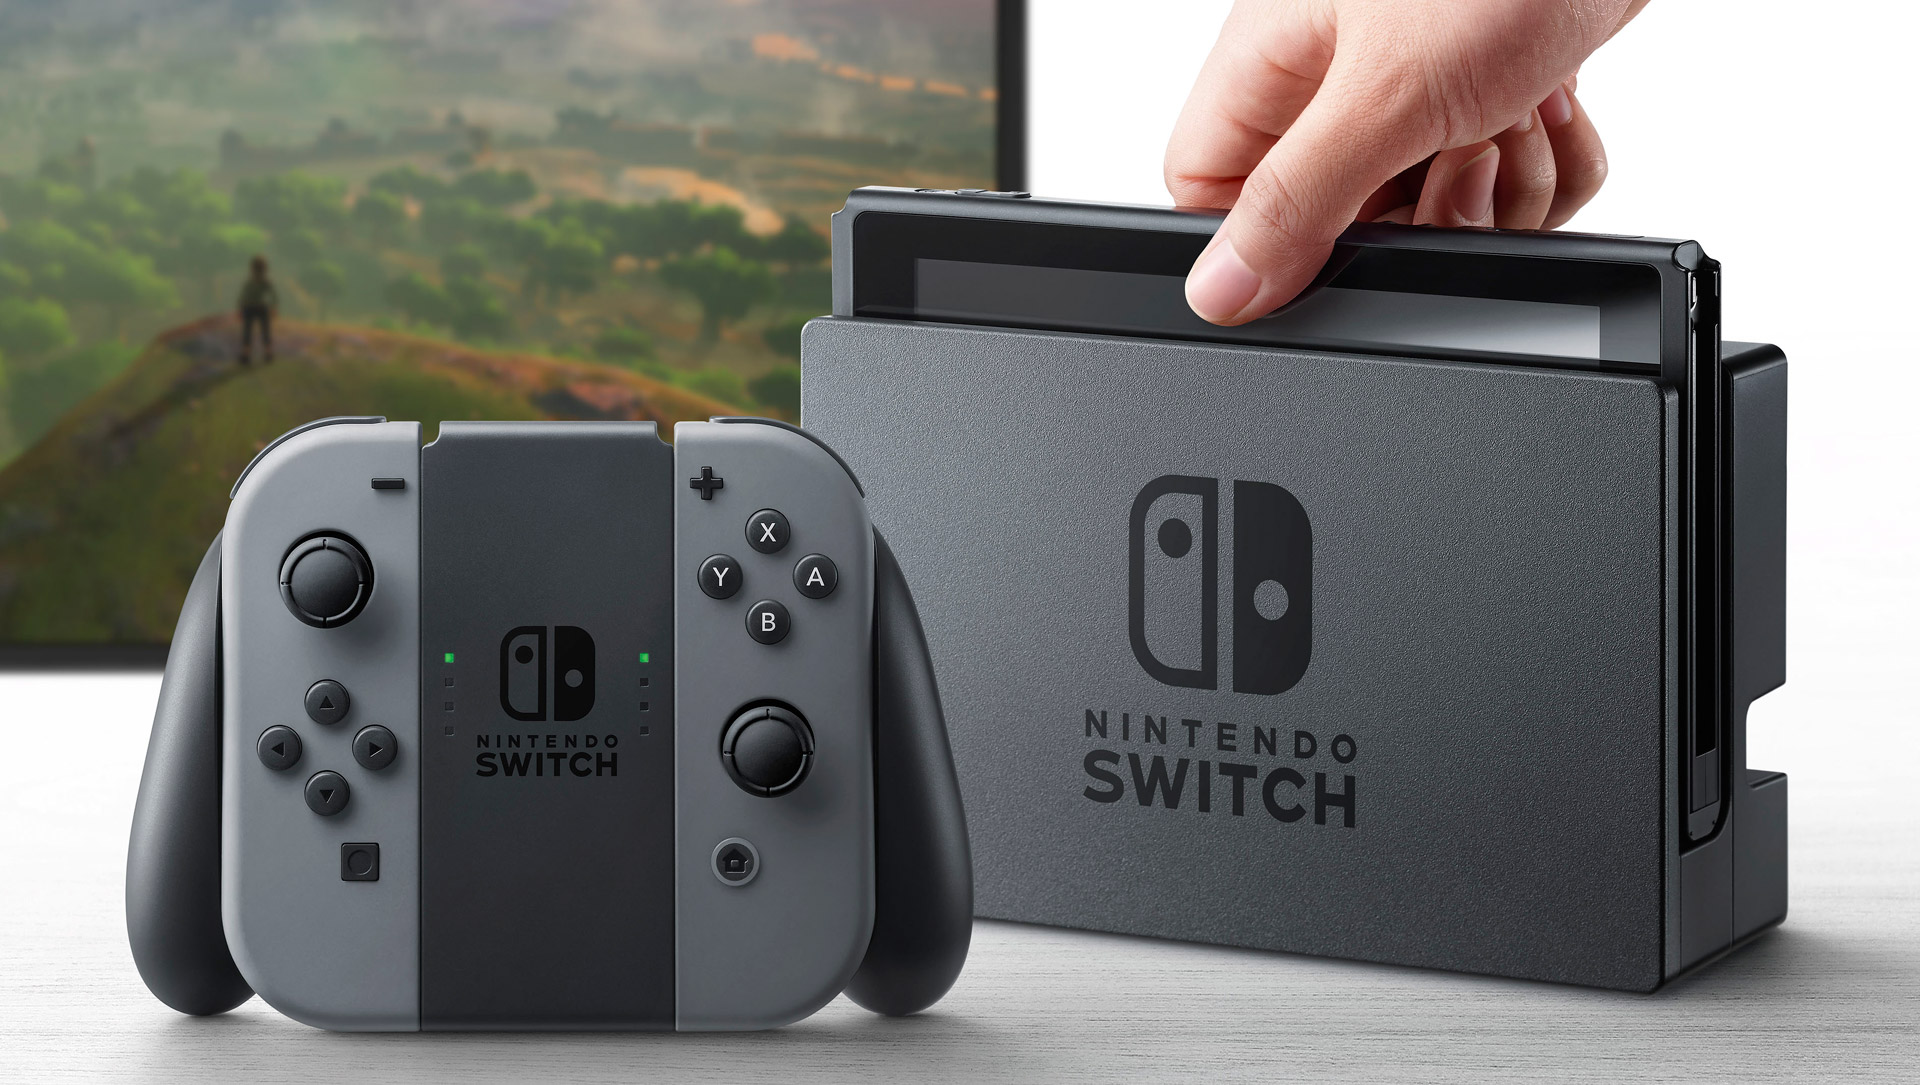 Photo of CEO-ul NVIDIA afirma faptul ca Nintendo Switch este o consola revolutionara